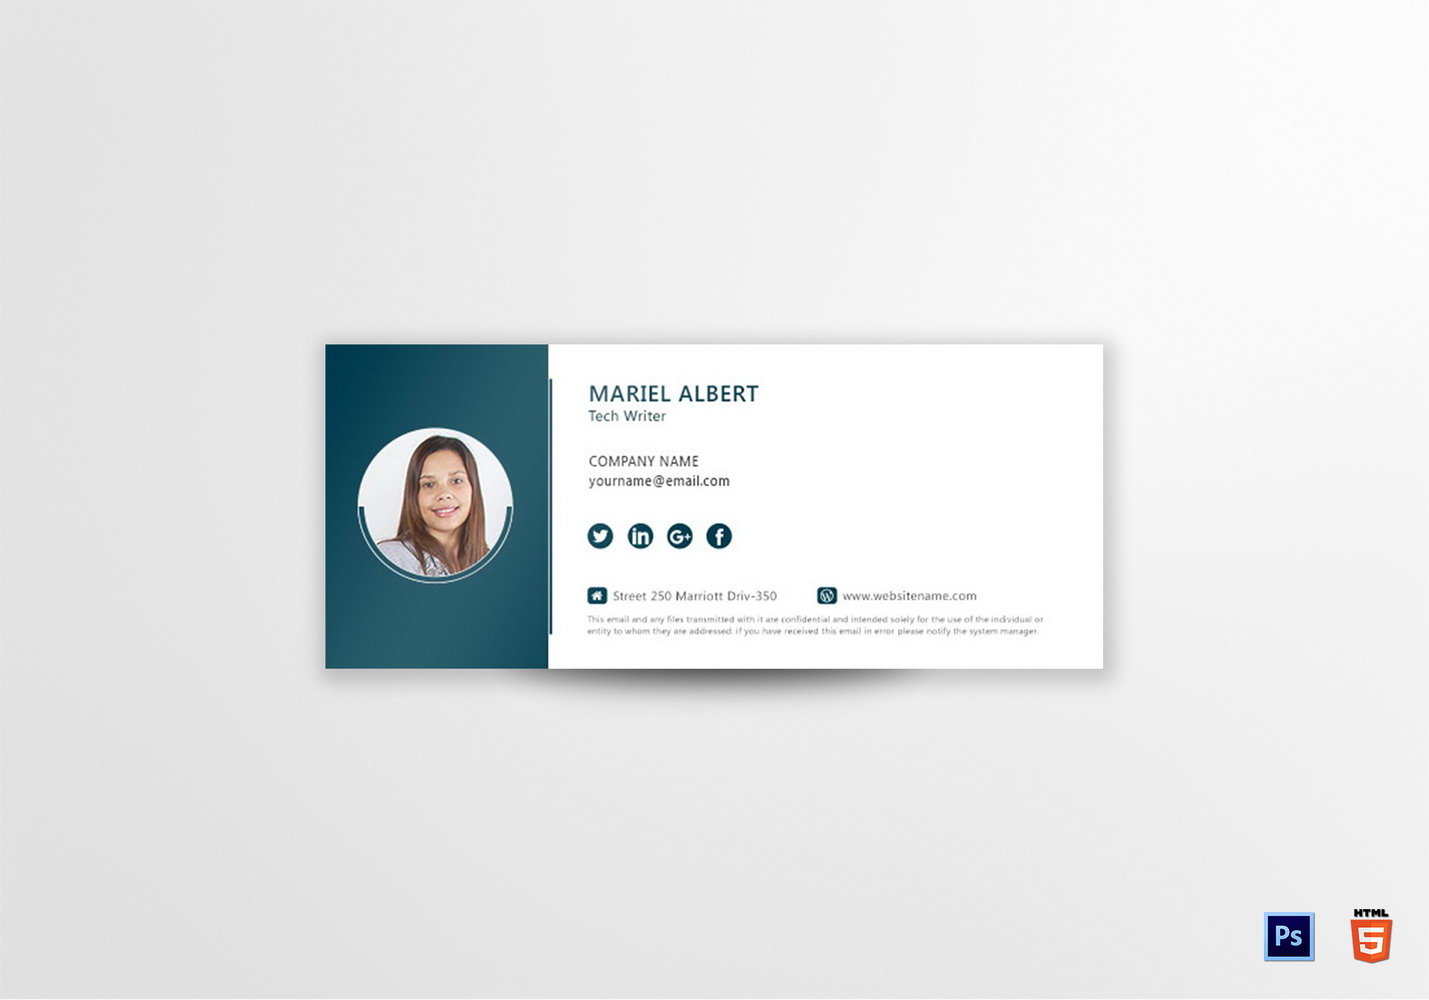 Html Email Signature Template Generator